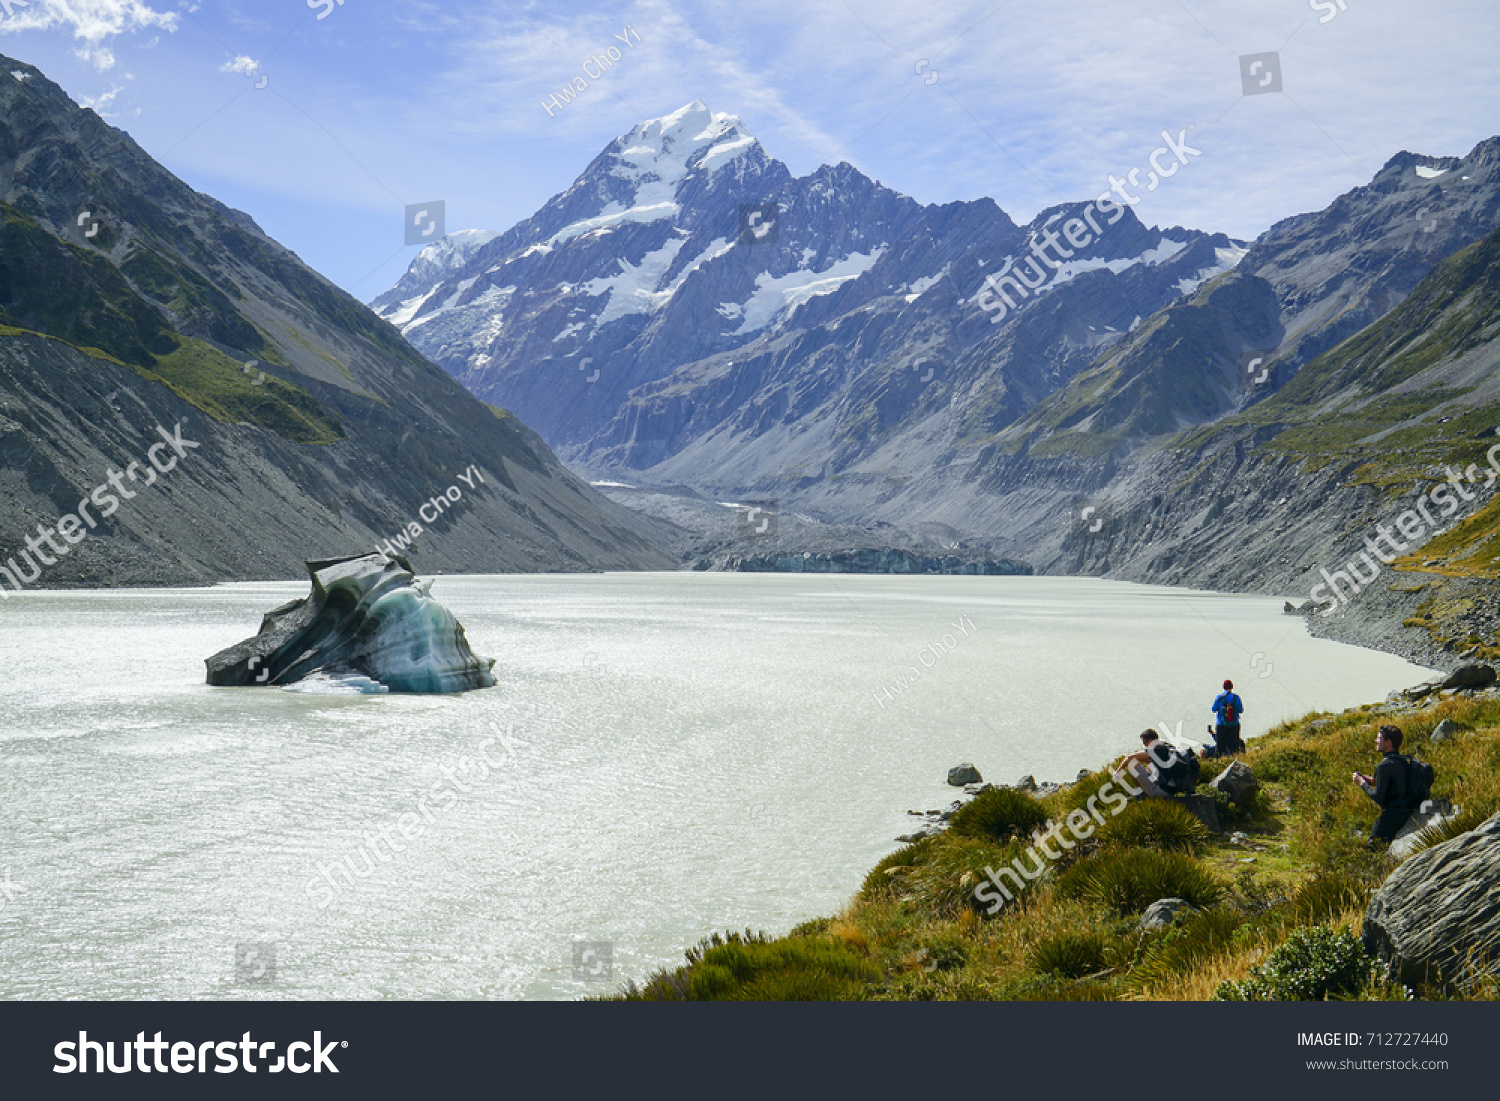 Mount cook national park new zealand stock photo royalty free mount cook national park new zealand stock photo royalty free 712727440 shutterstock publicscrutiny Image collections